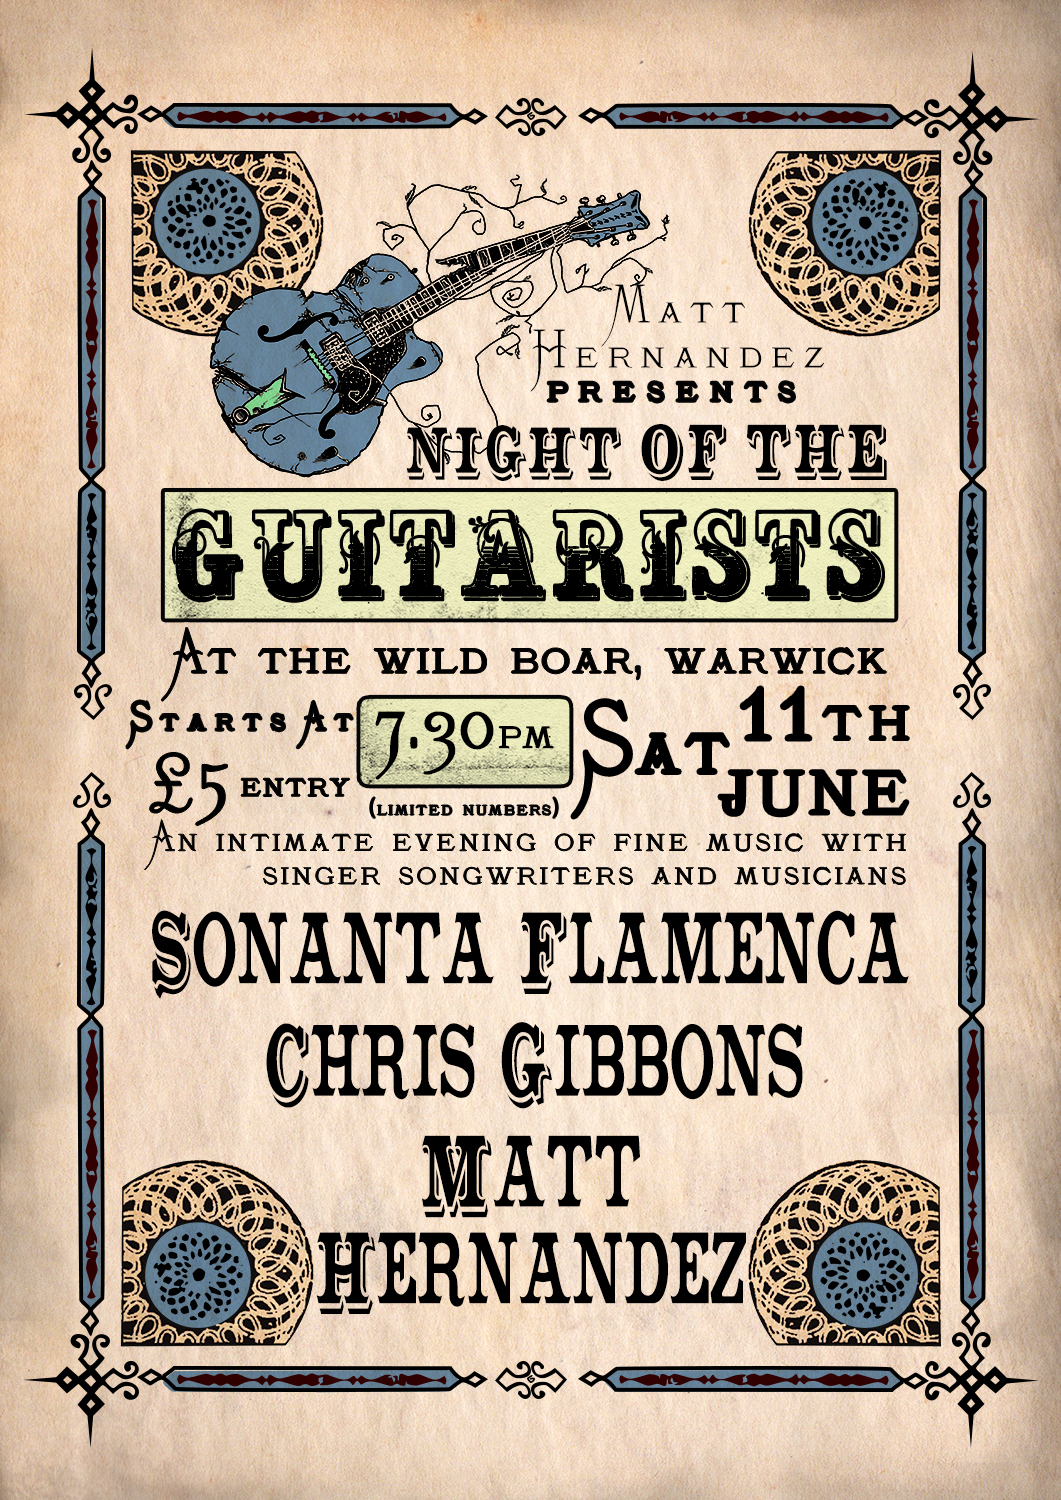 Night of the musicains poster